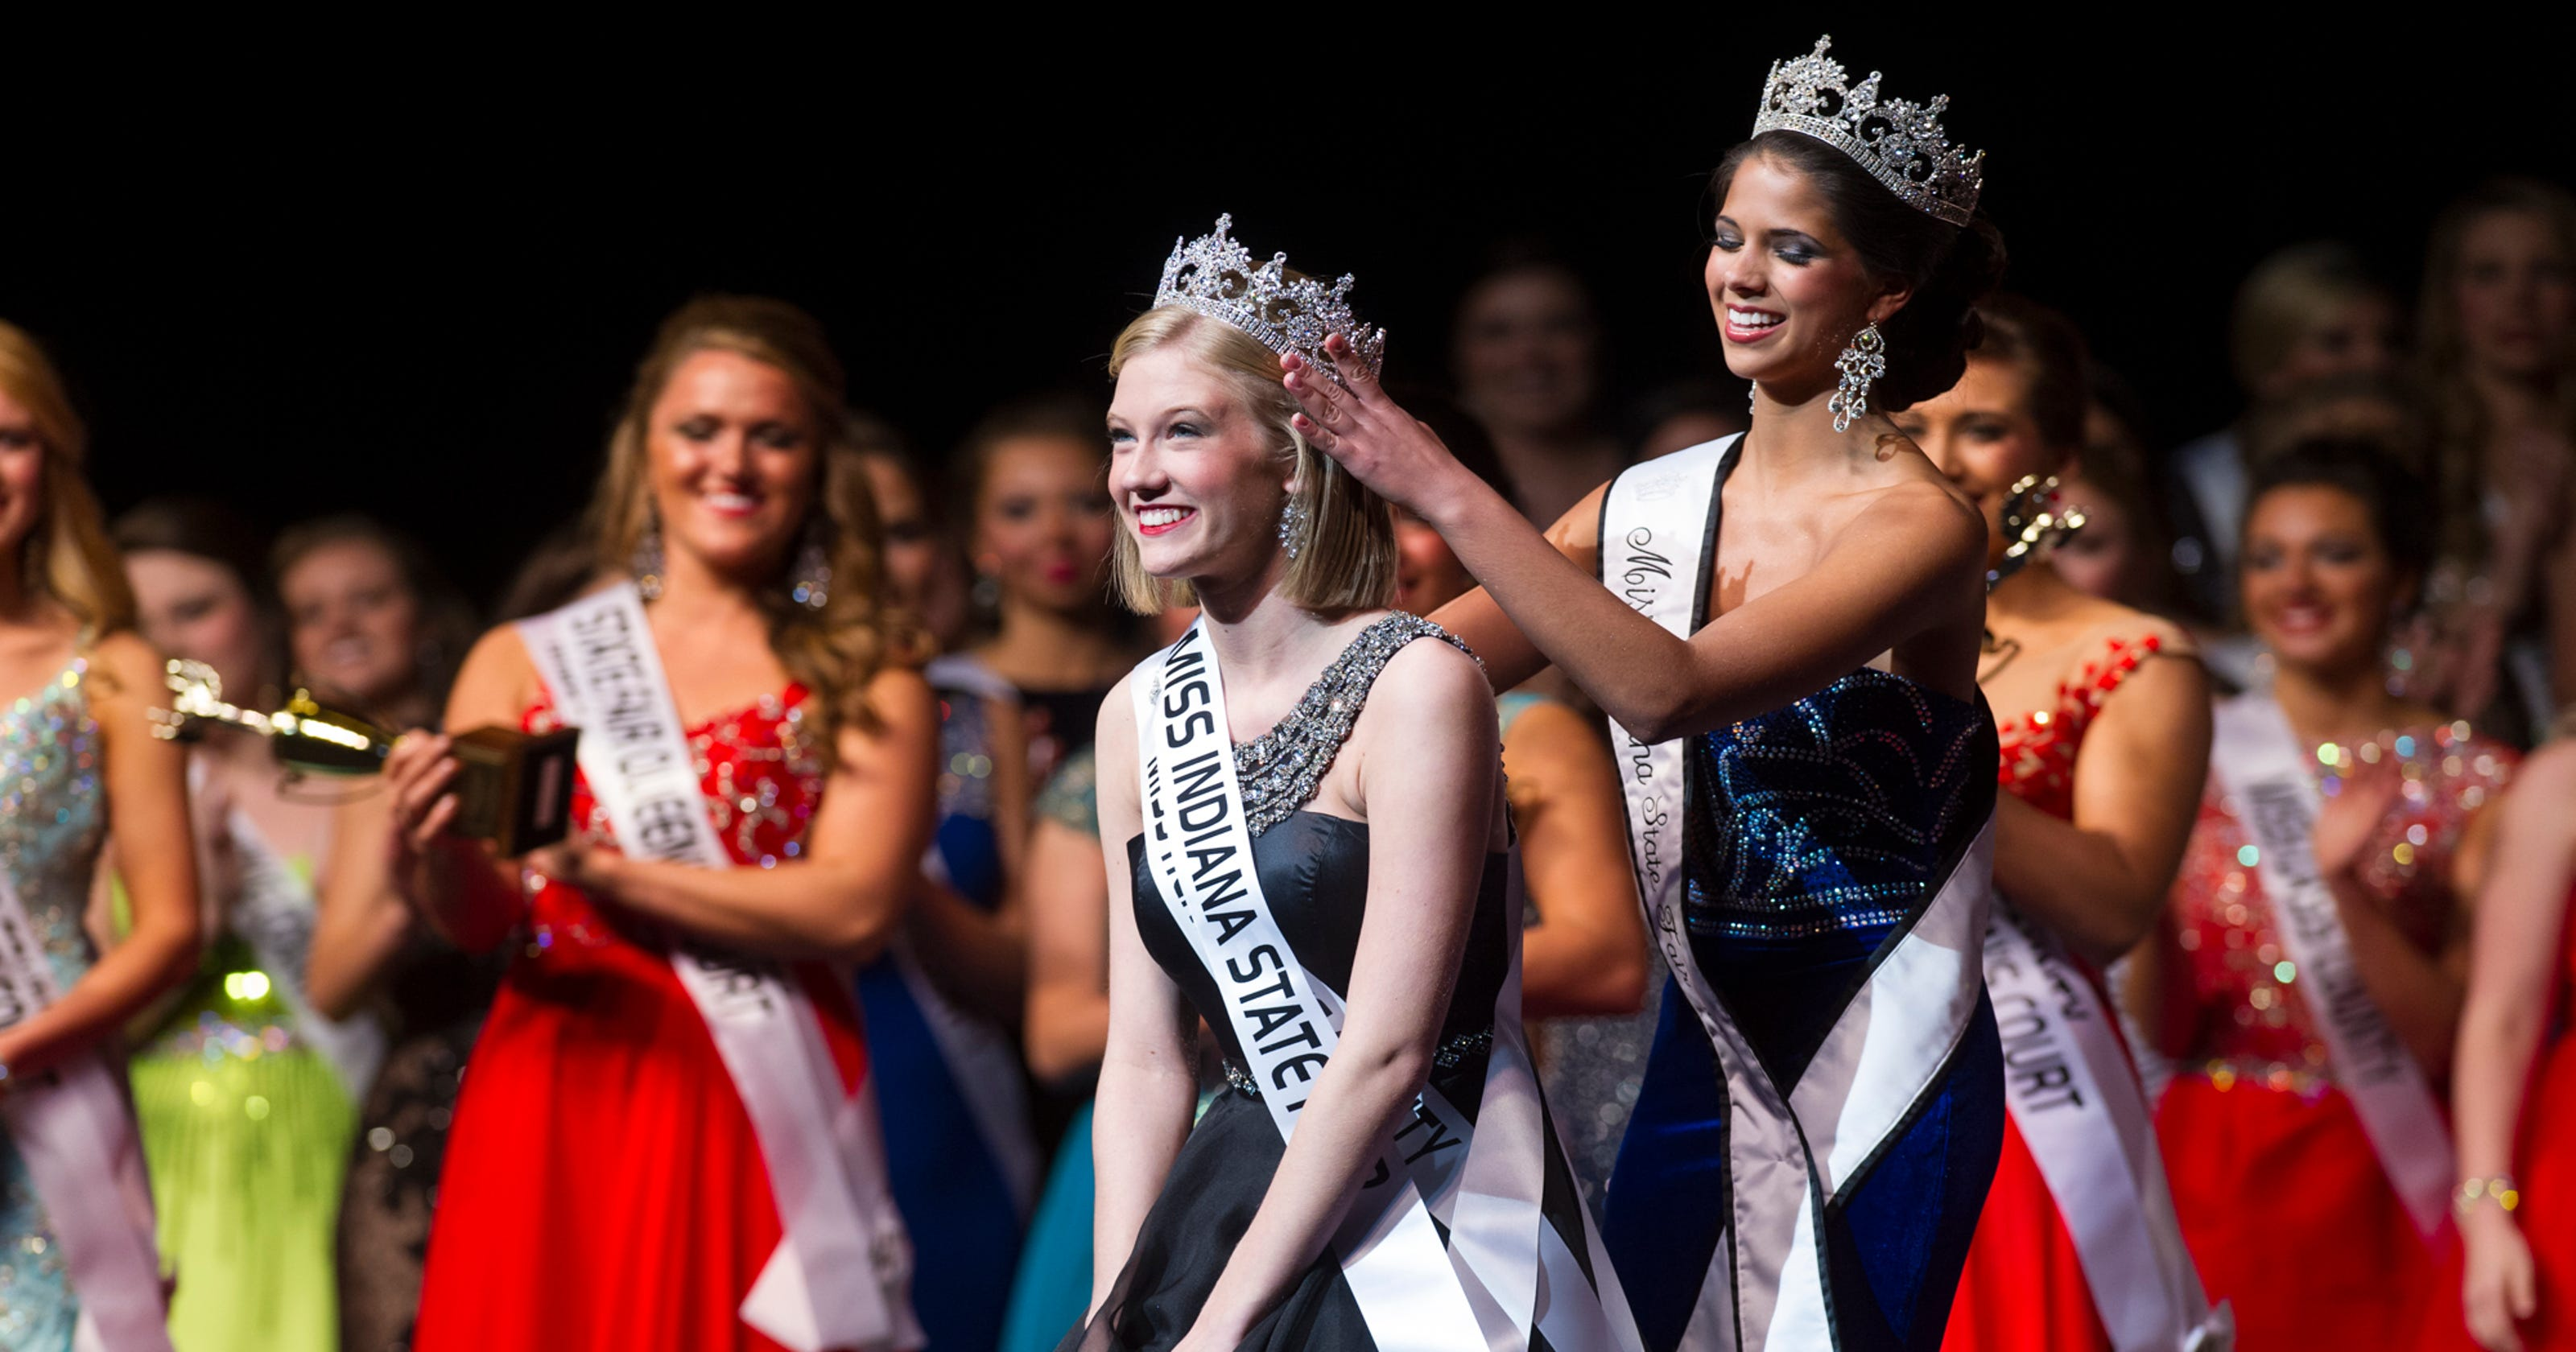 Hendricks County Native Crowned Indiana State Fair Queen